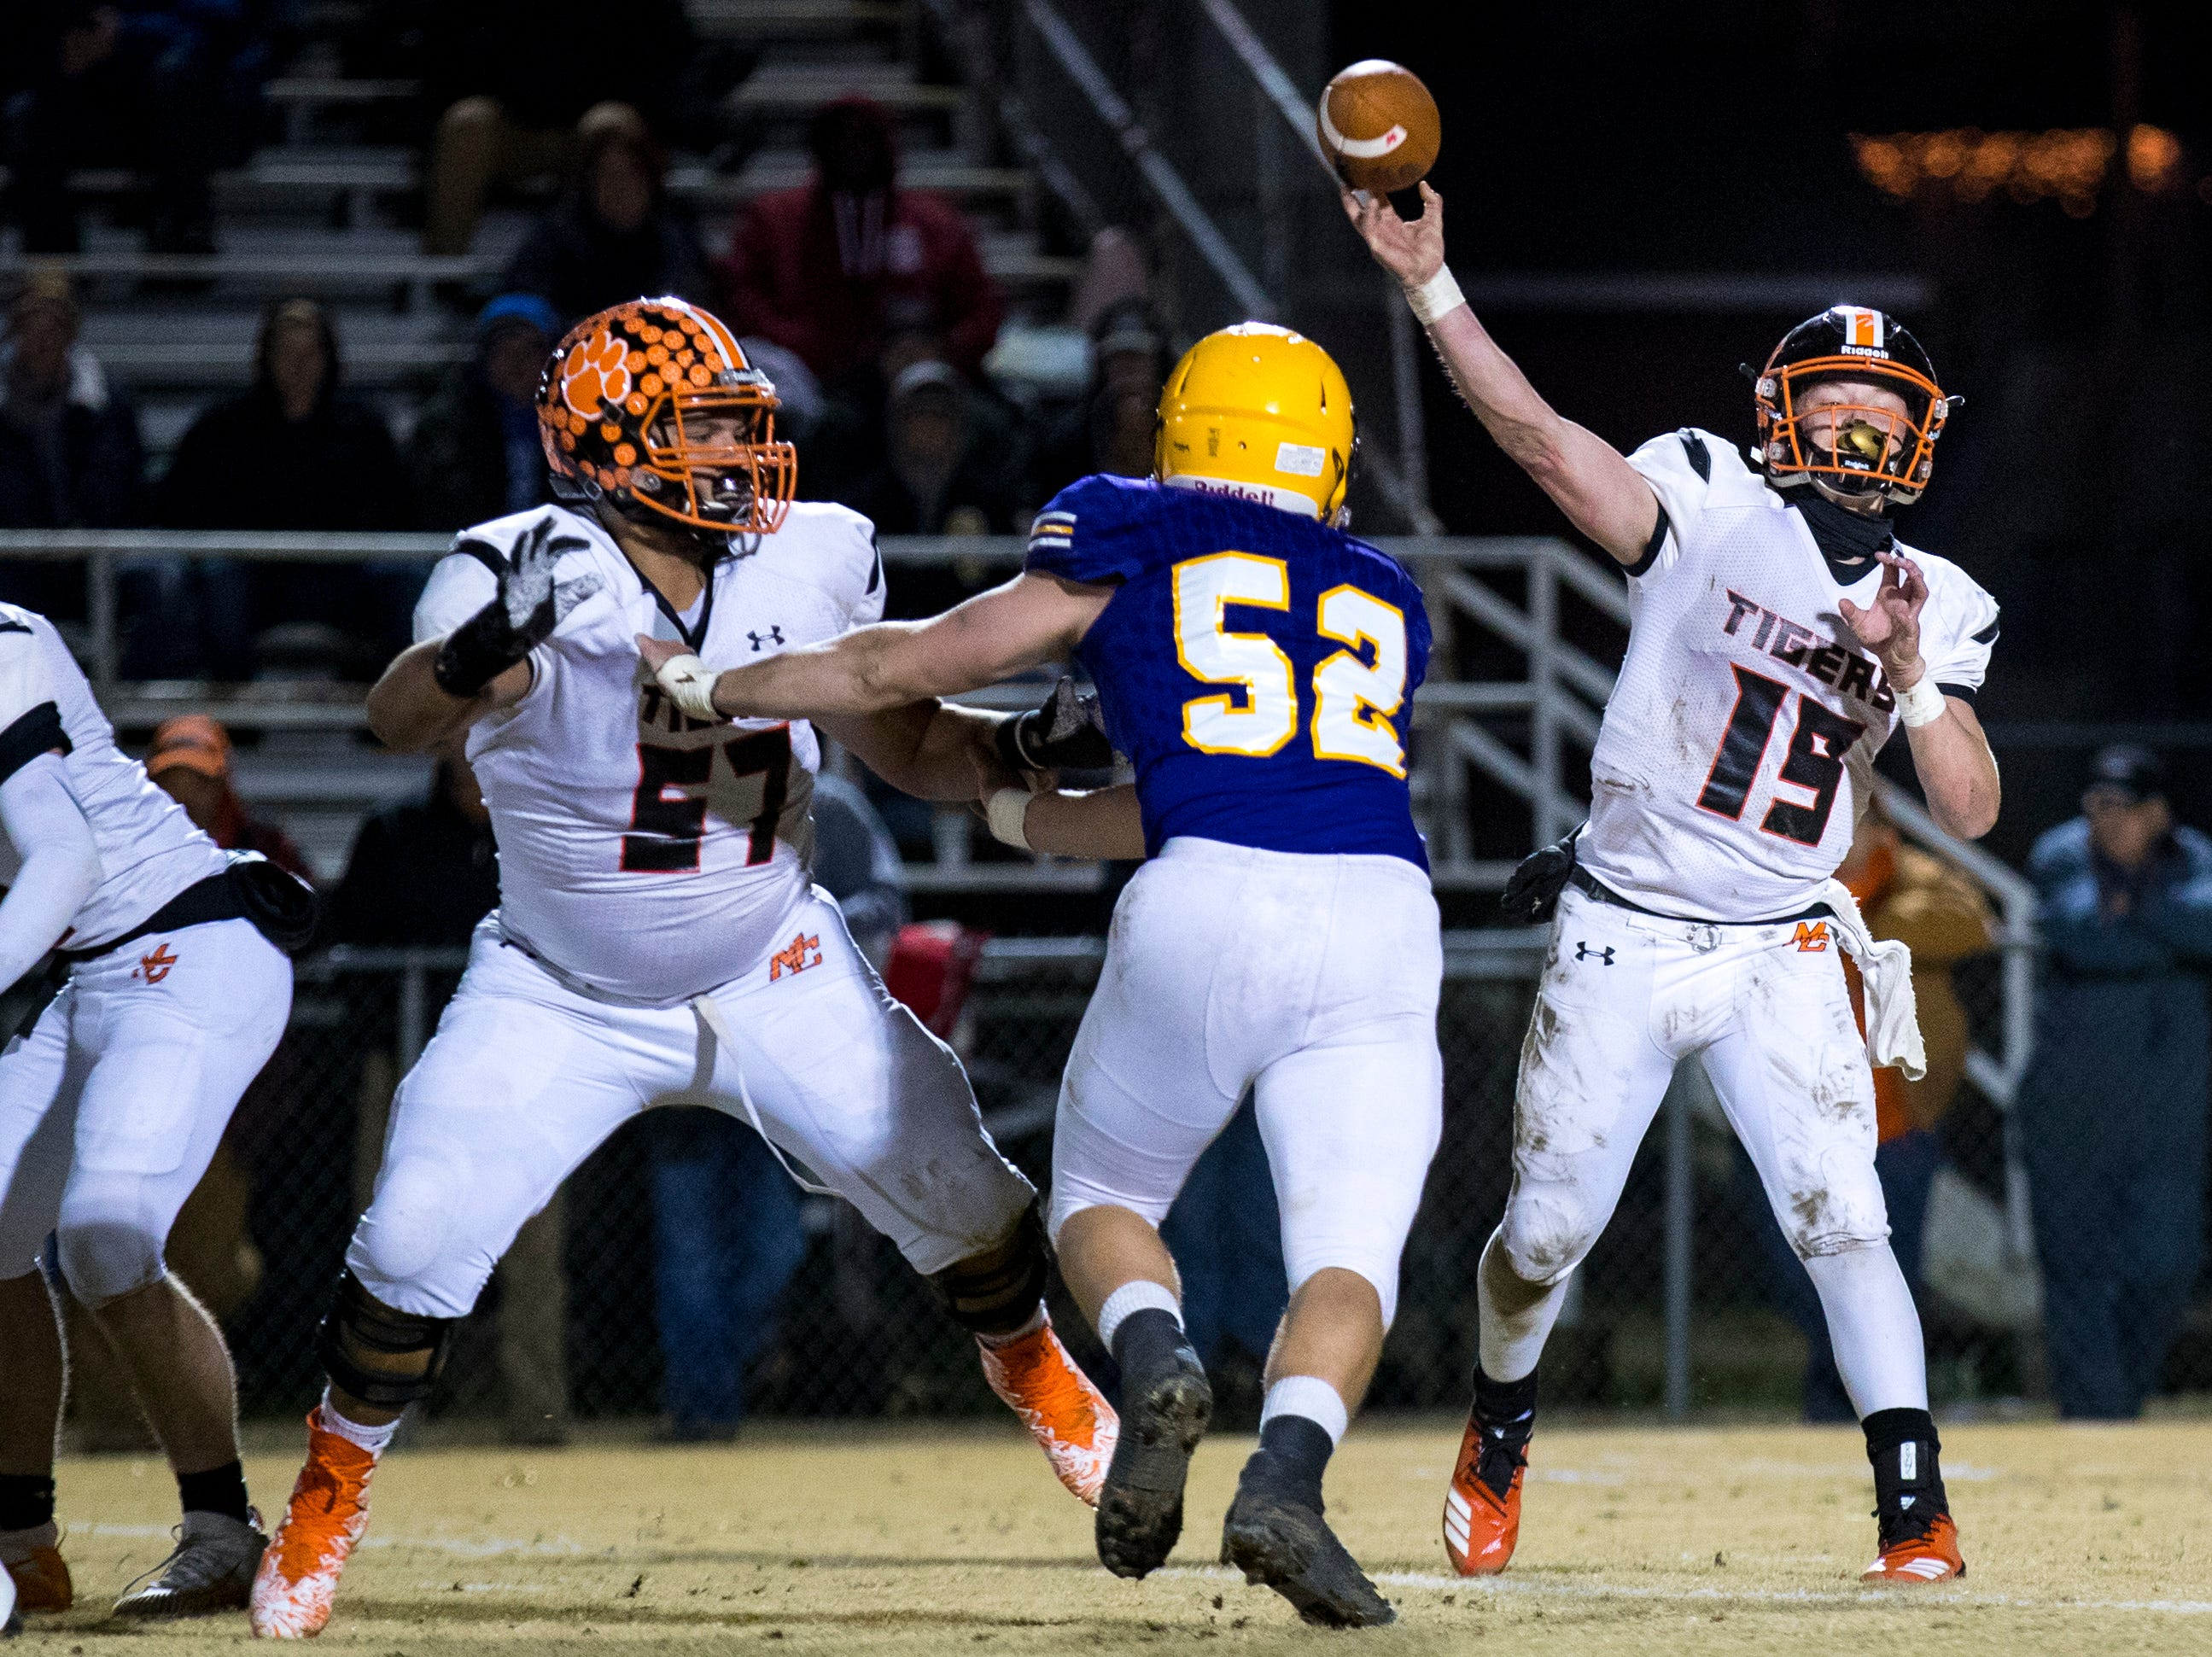 Meigs County's Aaron Swafford (19) passes during Trousdale County's game against Meigs County at Jim Satterfield Stadium in Hartsville on Friday, Nov. 23, 2018.